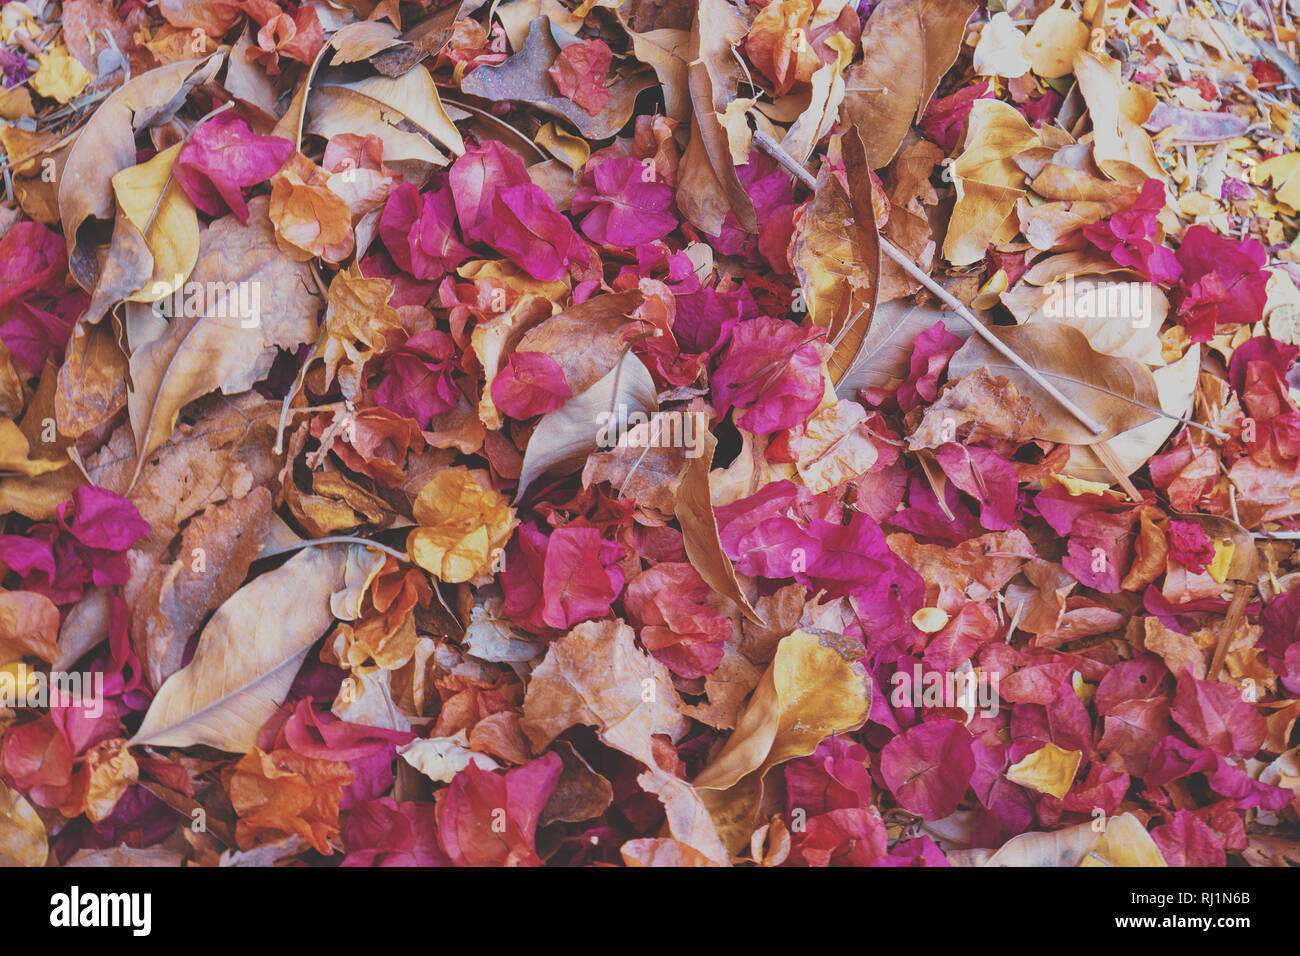 Fallen leaves and dry rose petals background Stock Photo